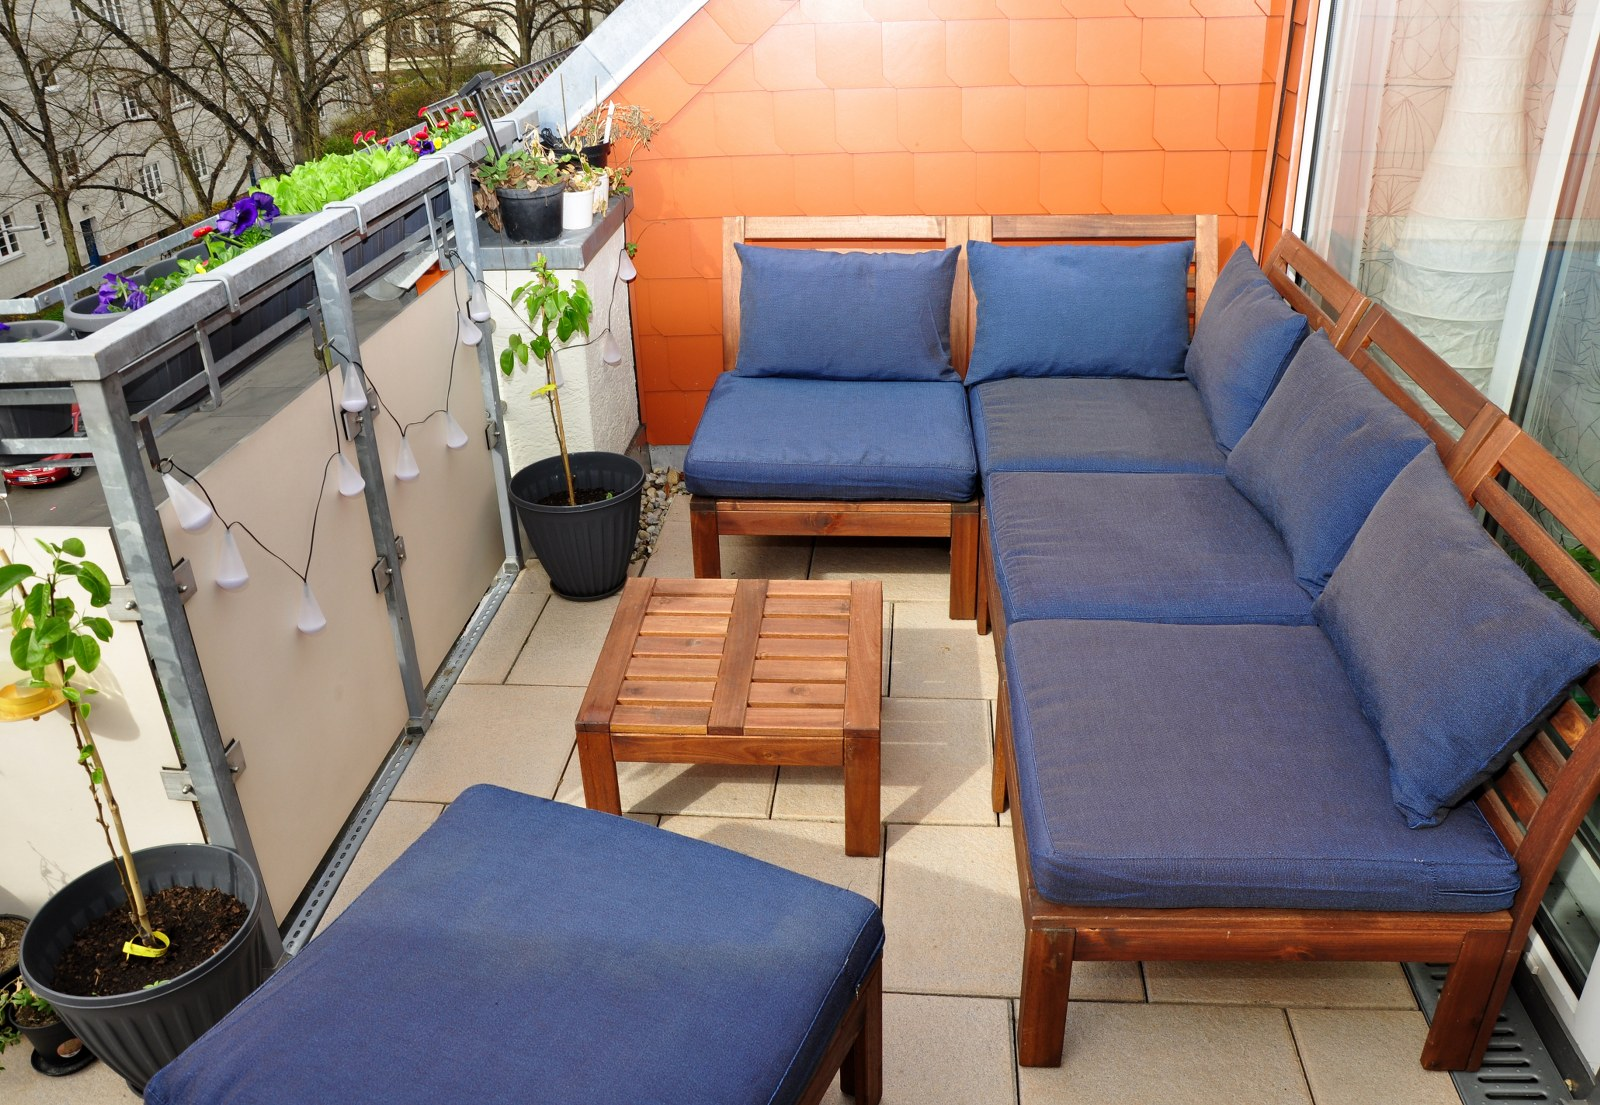 Ebay Gartenmöbel Ikea Ikea Gartenmöbel 14 Garden Furniture Ideas From Ikea Set